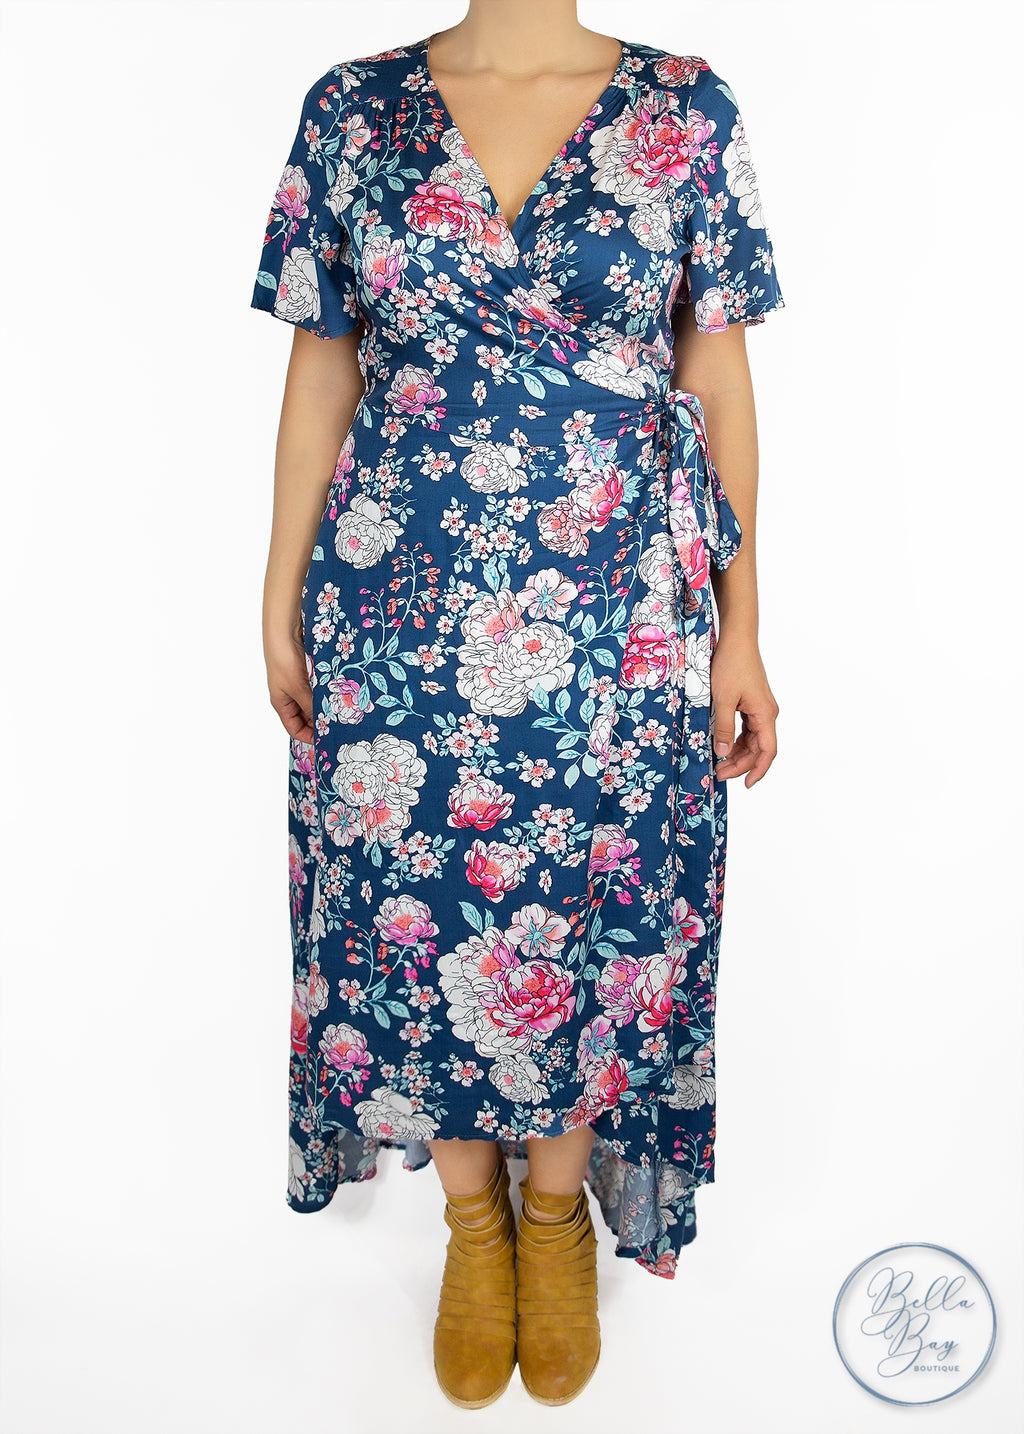 Paisley Raye Primrose Wrap Dress- Blue Floral (XL) - Paisley Raye with Bella Bay Boutique, shop now at  https://shopbellabay.com/ or locally in Newport Oregon